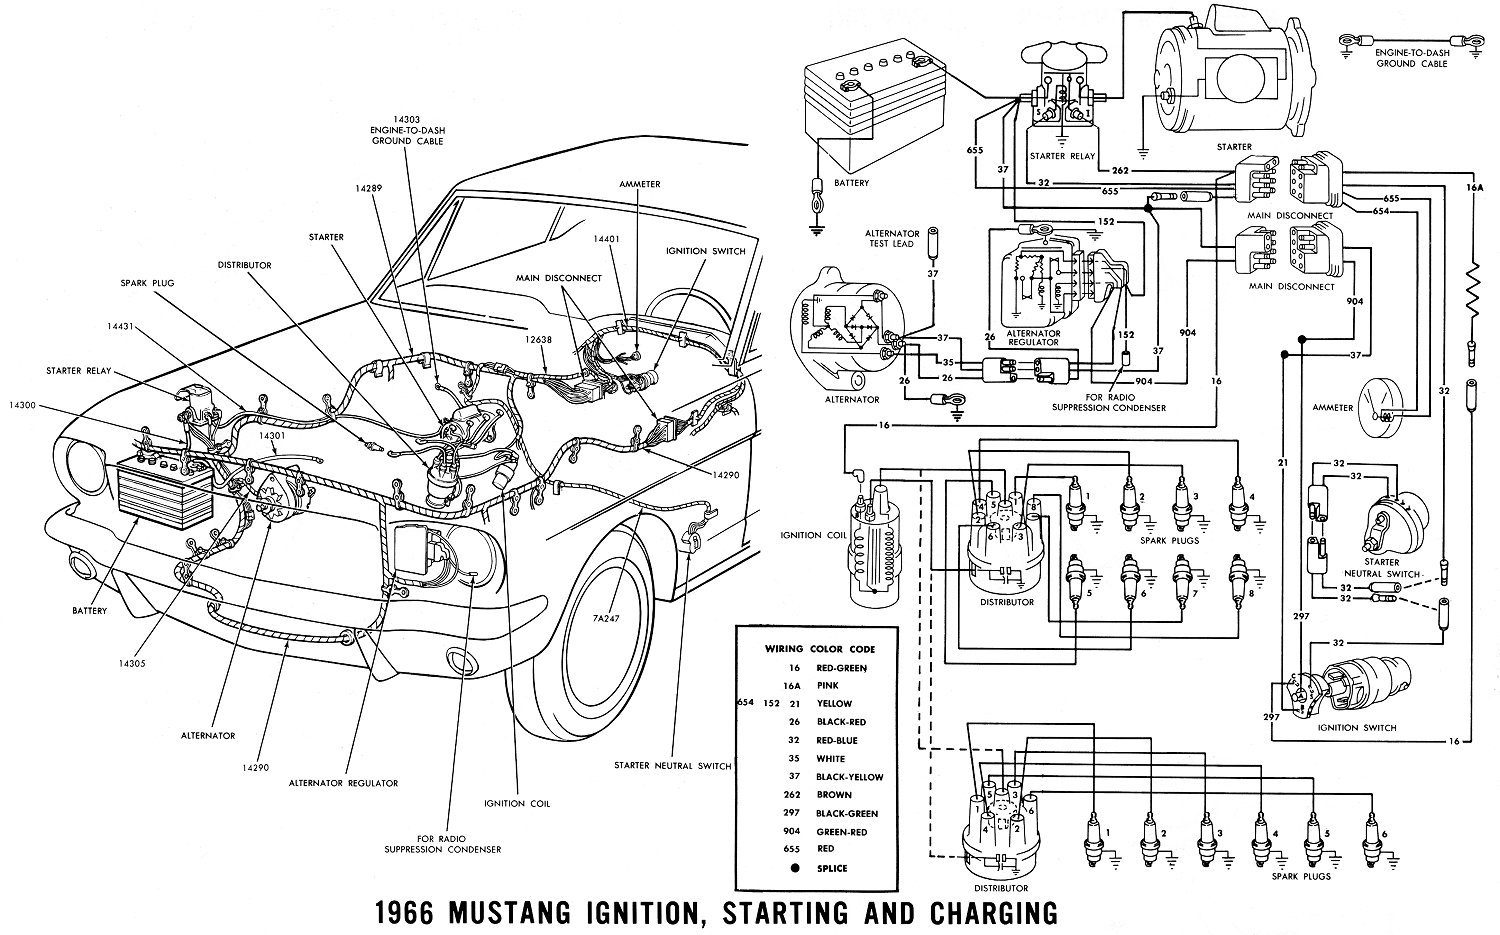 Electric choke wiring question-66-mustang-wiring.jpg